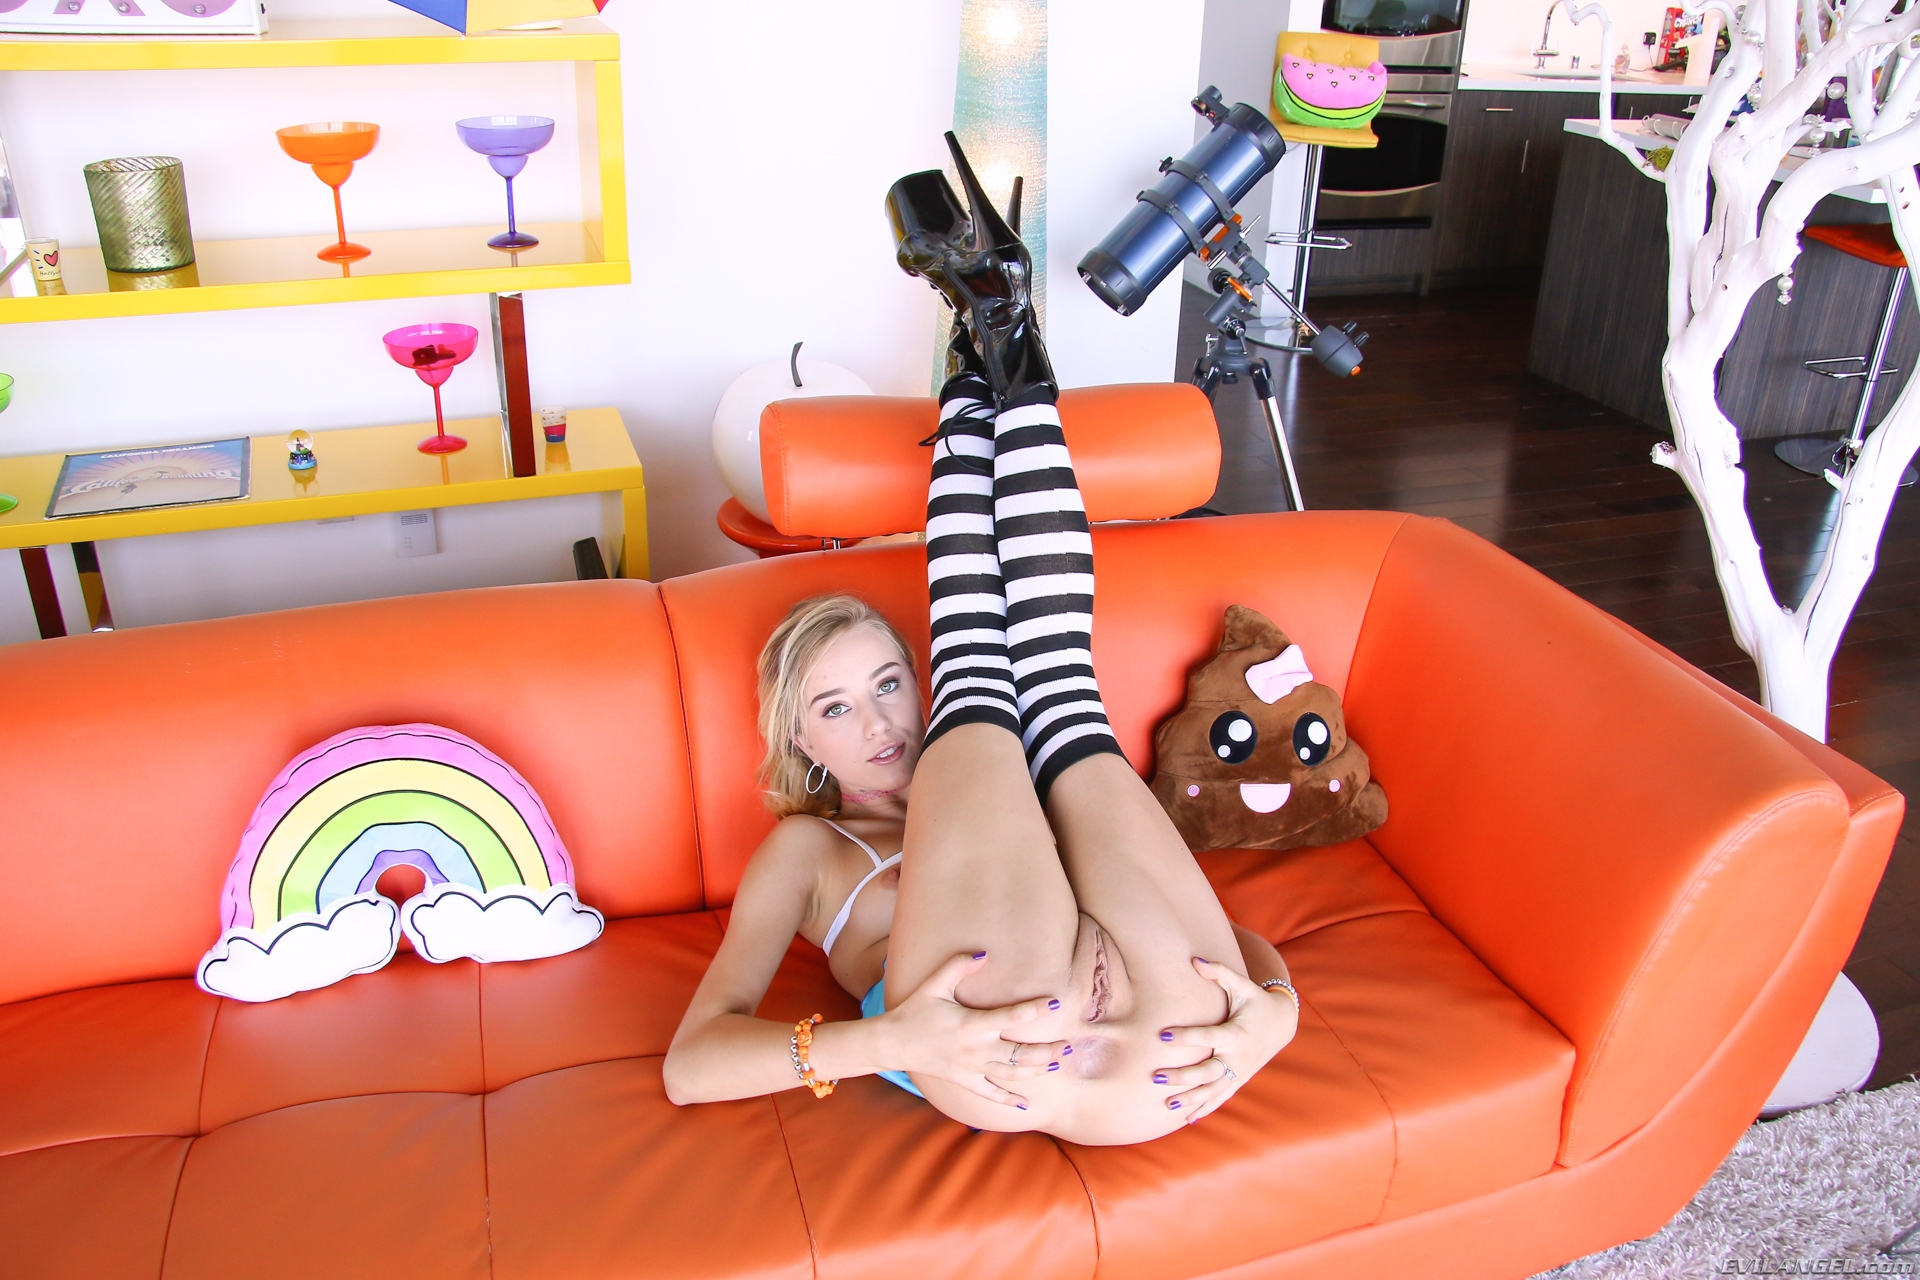 super tight cutie flashing her boney ass on the procuders couch #6